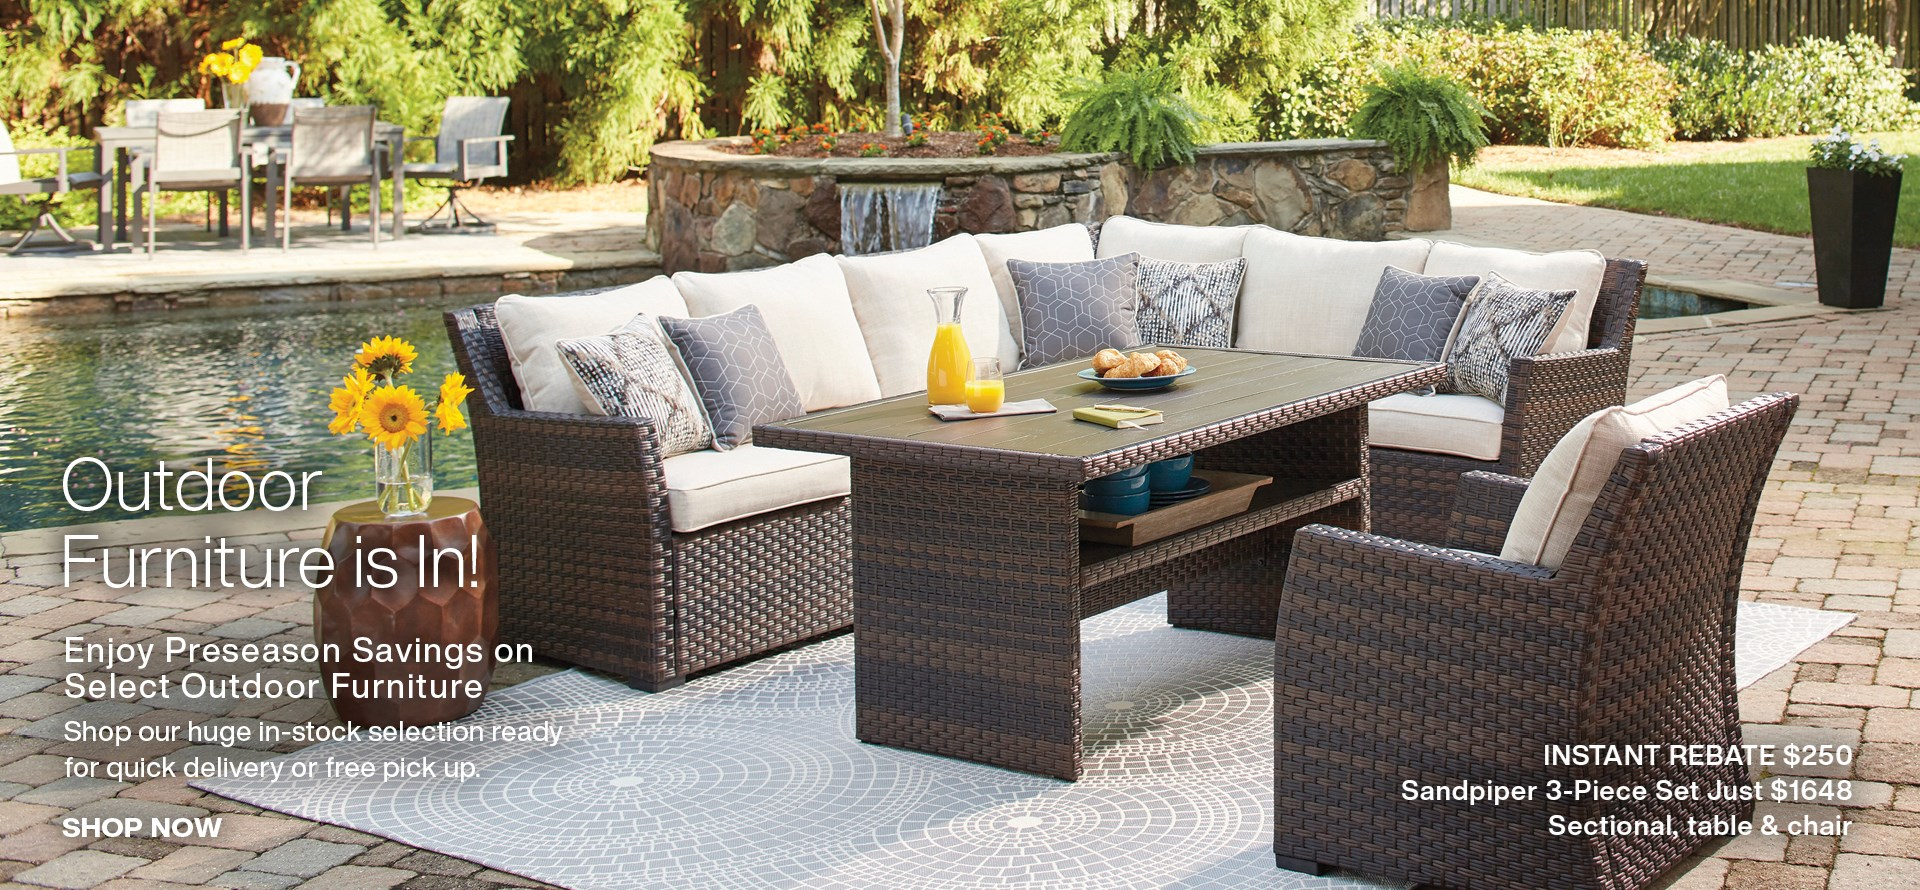 Outdoor Furniture is In! Shop pre